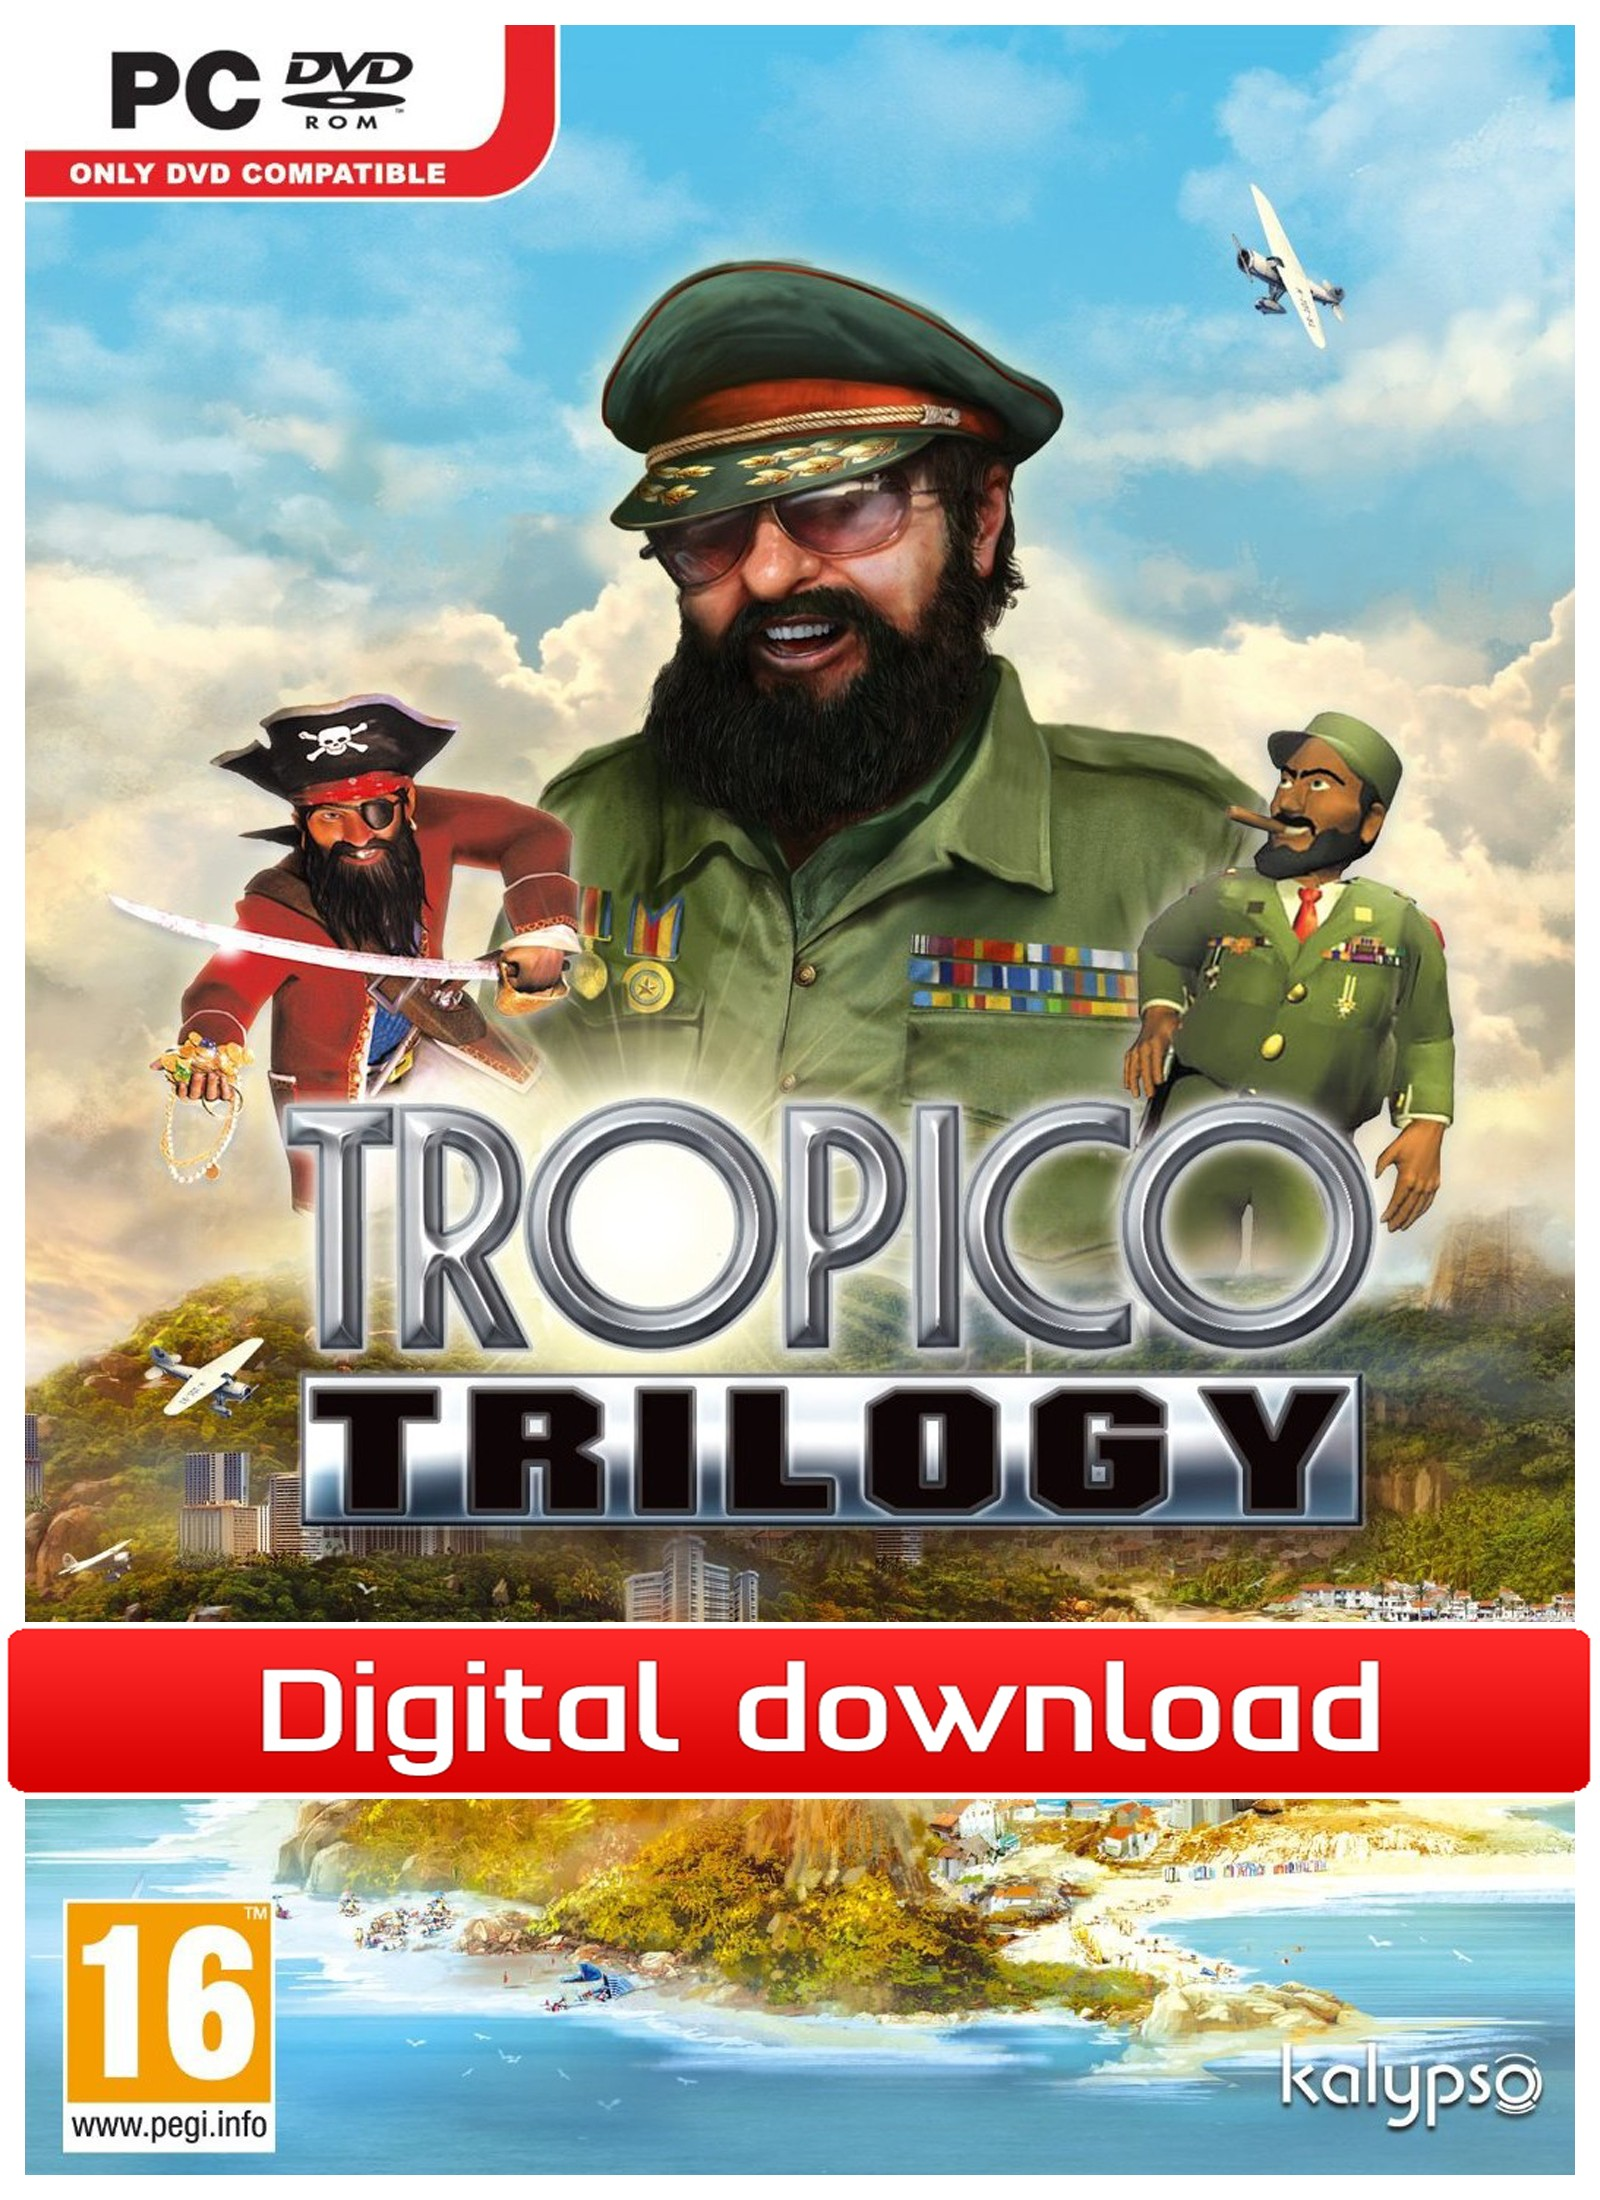 27639 : Tropico Trilogy (PC nedlastning)